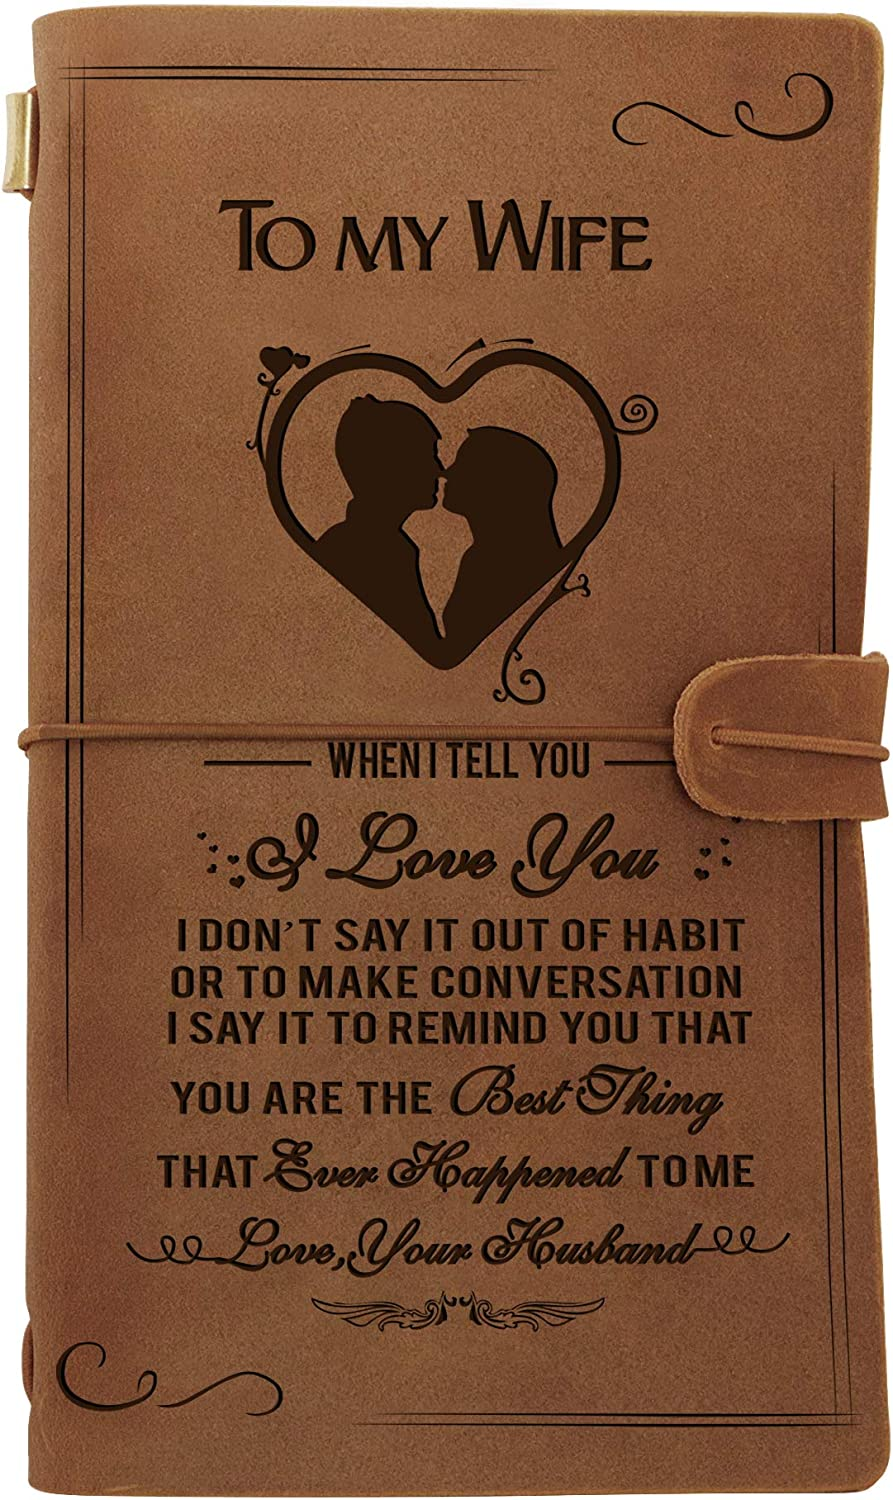 Engraved Leather Notebook To My Genuine quality assurance Gifts- Wife Fees free Hand-Crafted